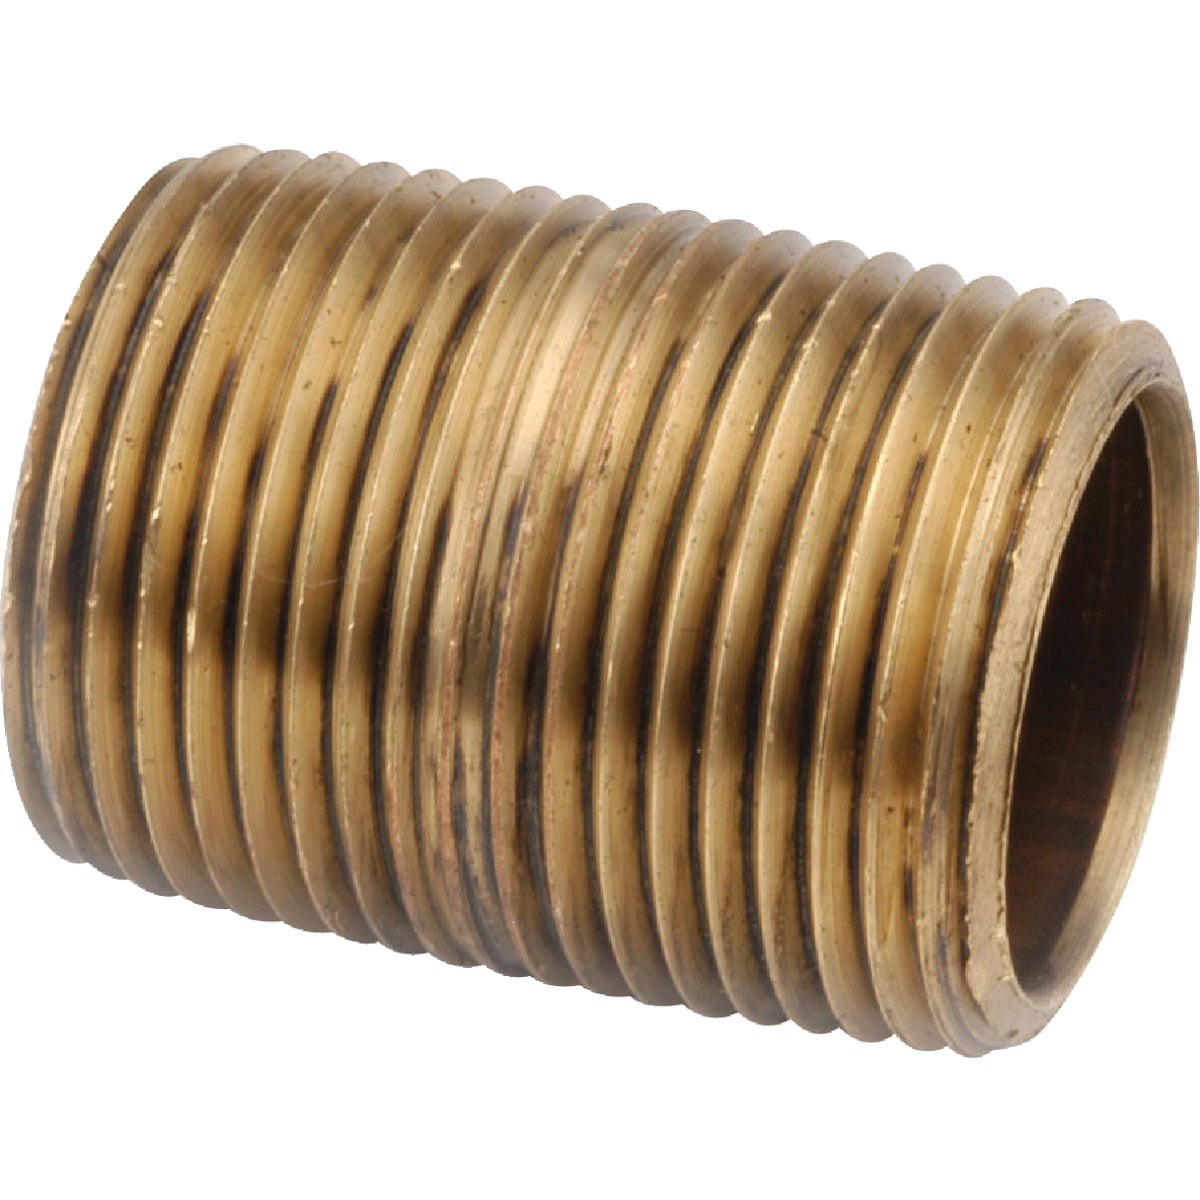 1XCLOSE RED BRASS NIPPLE - 38300-16 by Anderson Metals Corp